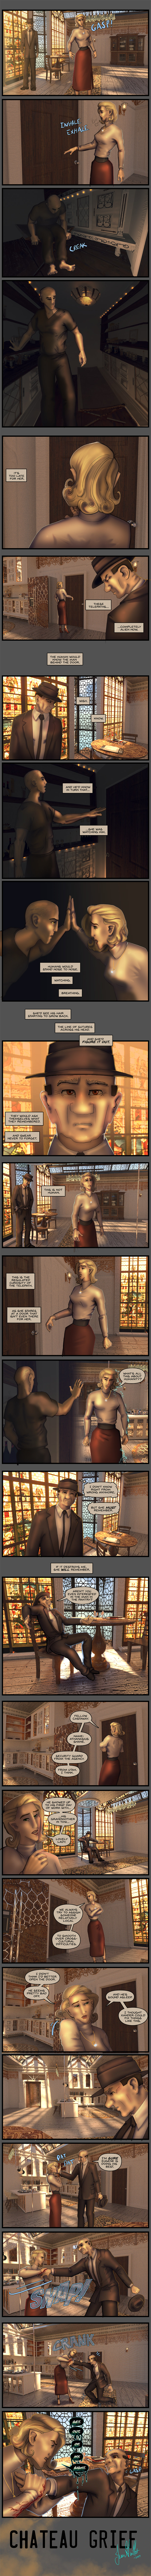 Chateau Grief 114